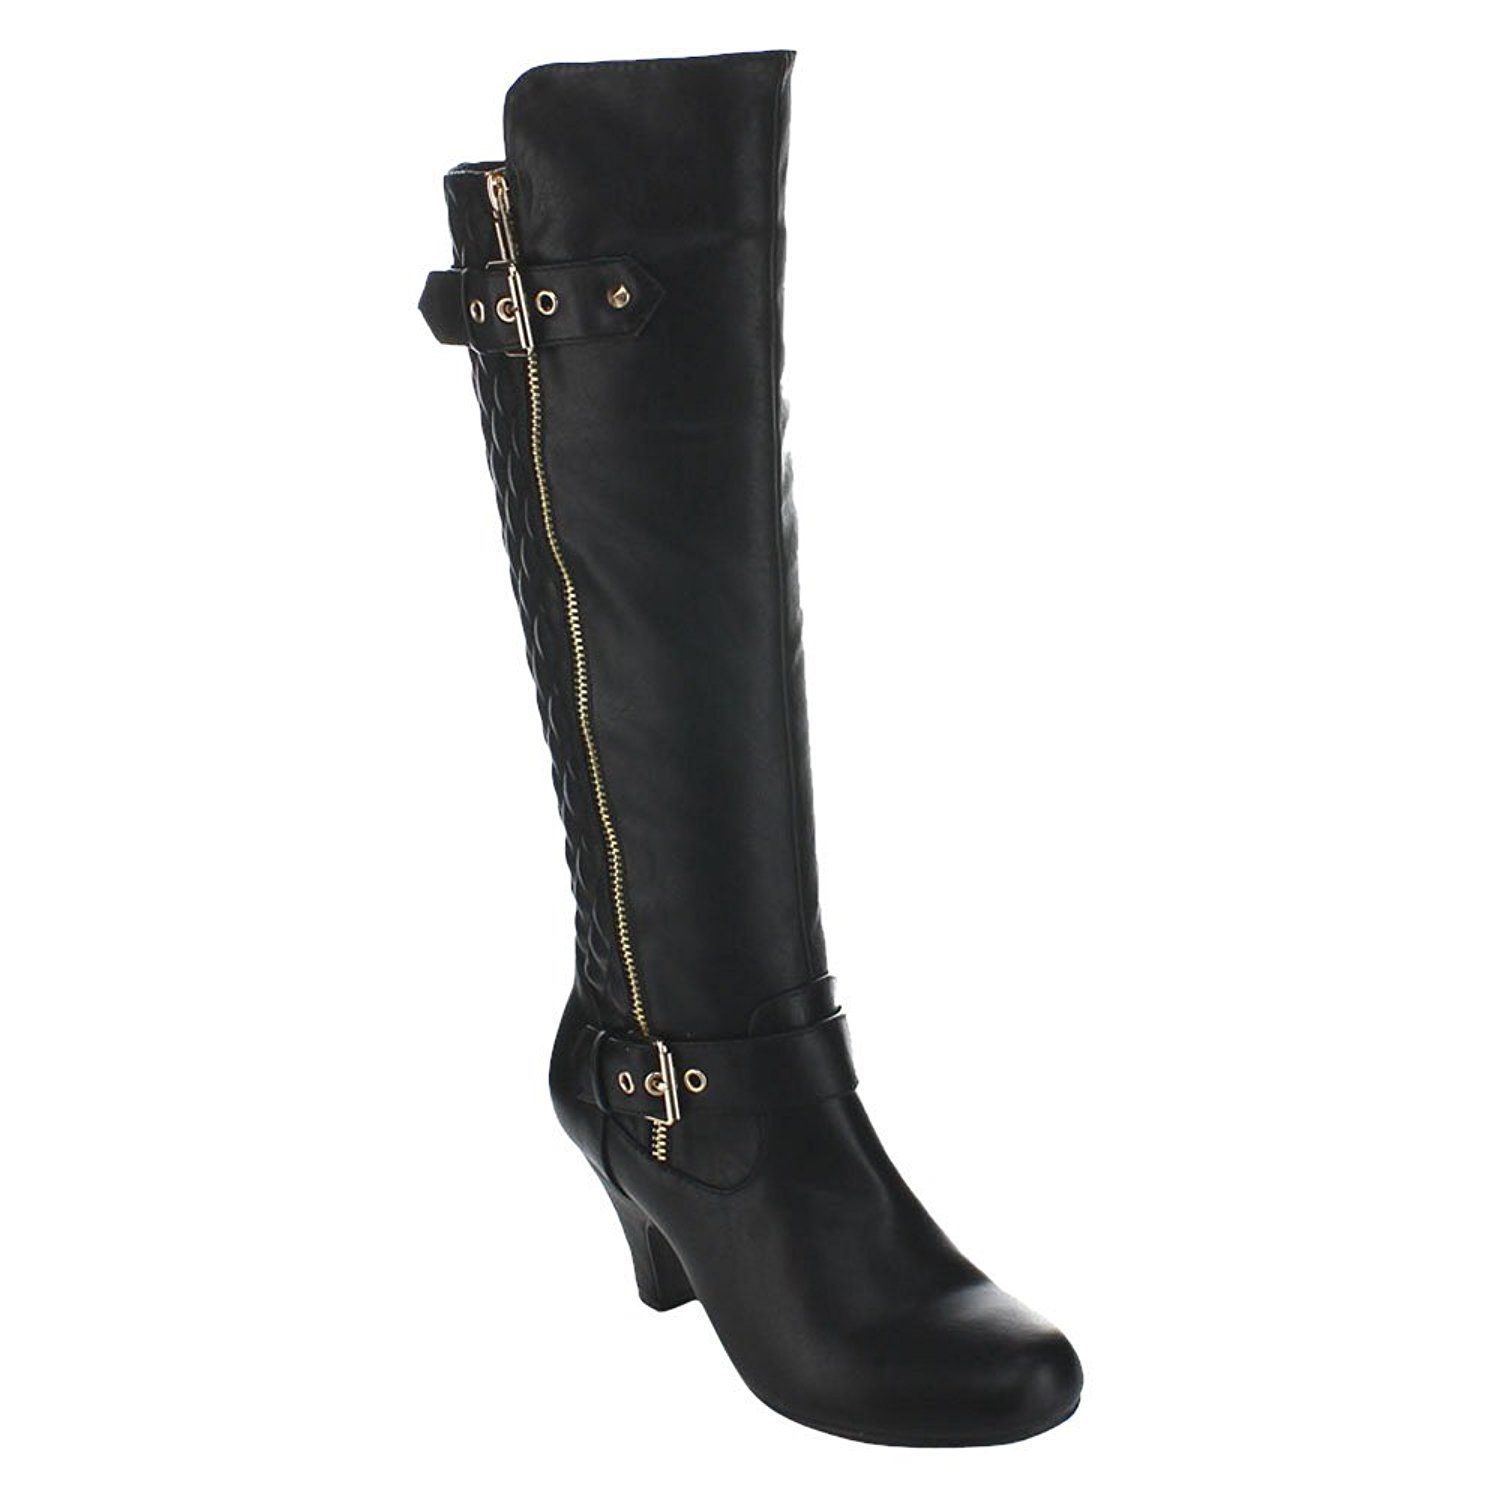 FOREVER ELVINA-22 Women's Knee High Quilted Back Shaft Boots ... : quilted back boots - Adamdwight.com